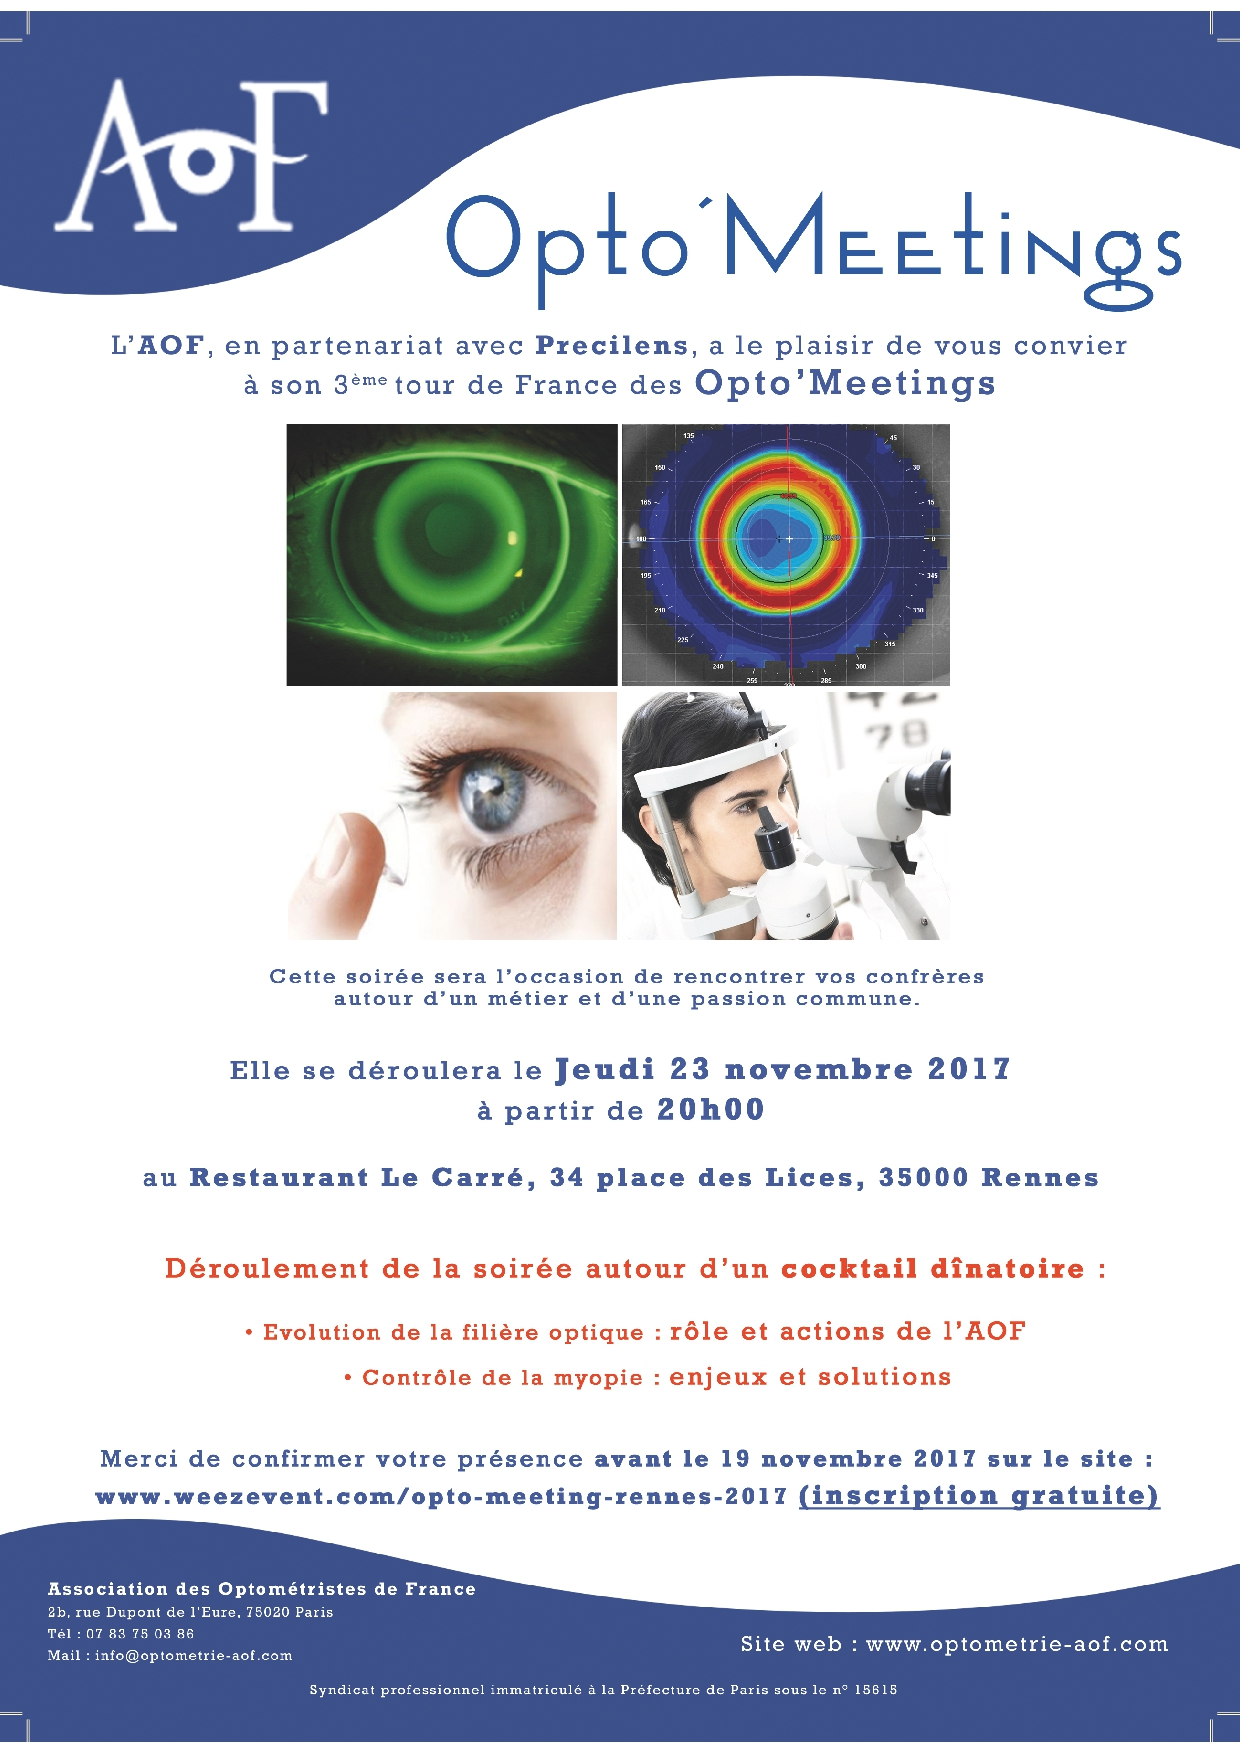 Opto'Meeting RENNES : Inscription gratuite.